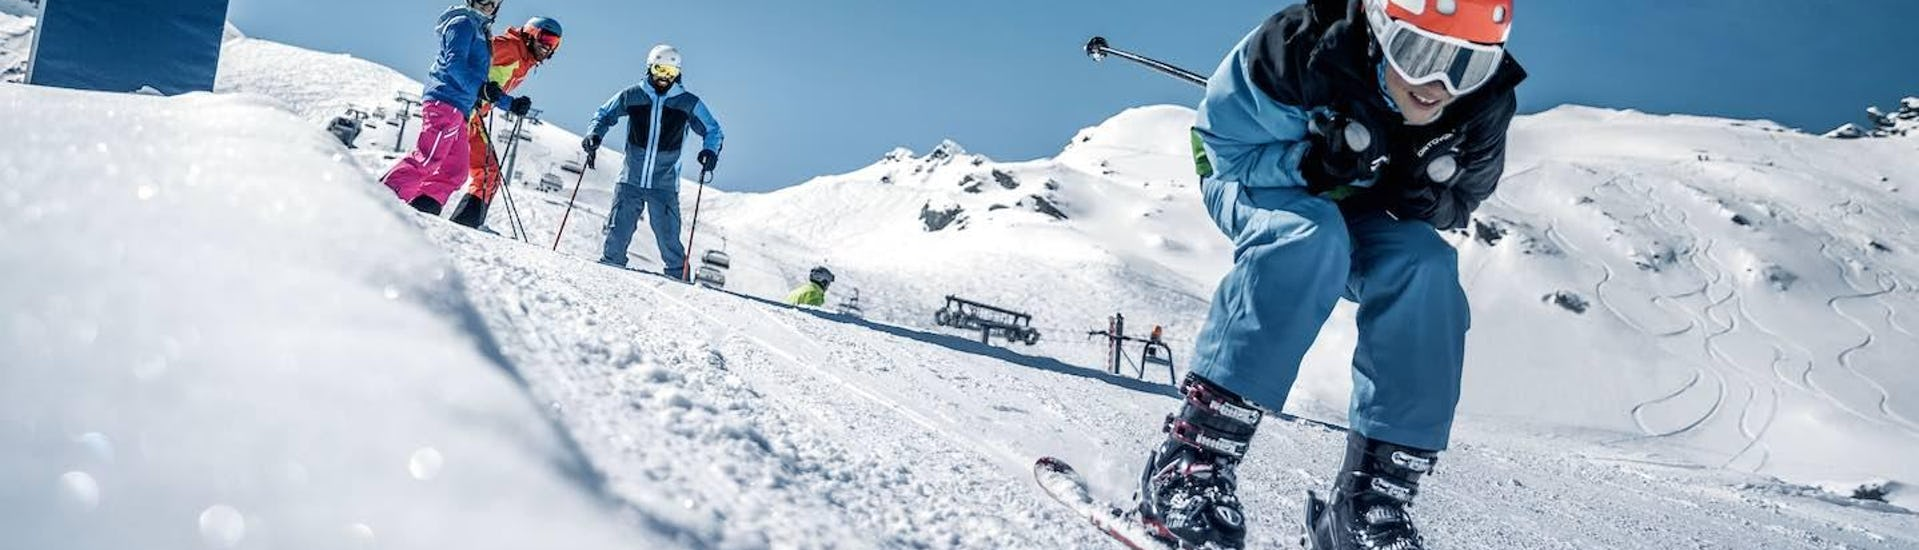 "Ski Lessons ""Teens course"" (12-17 years)"